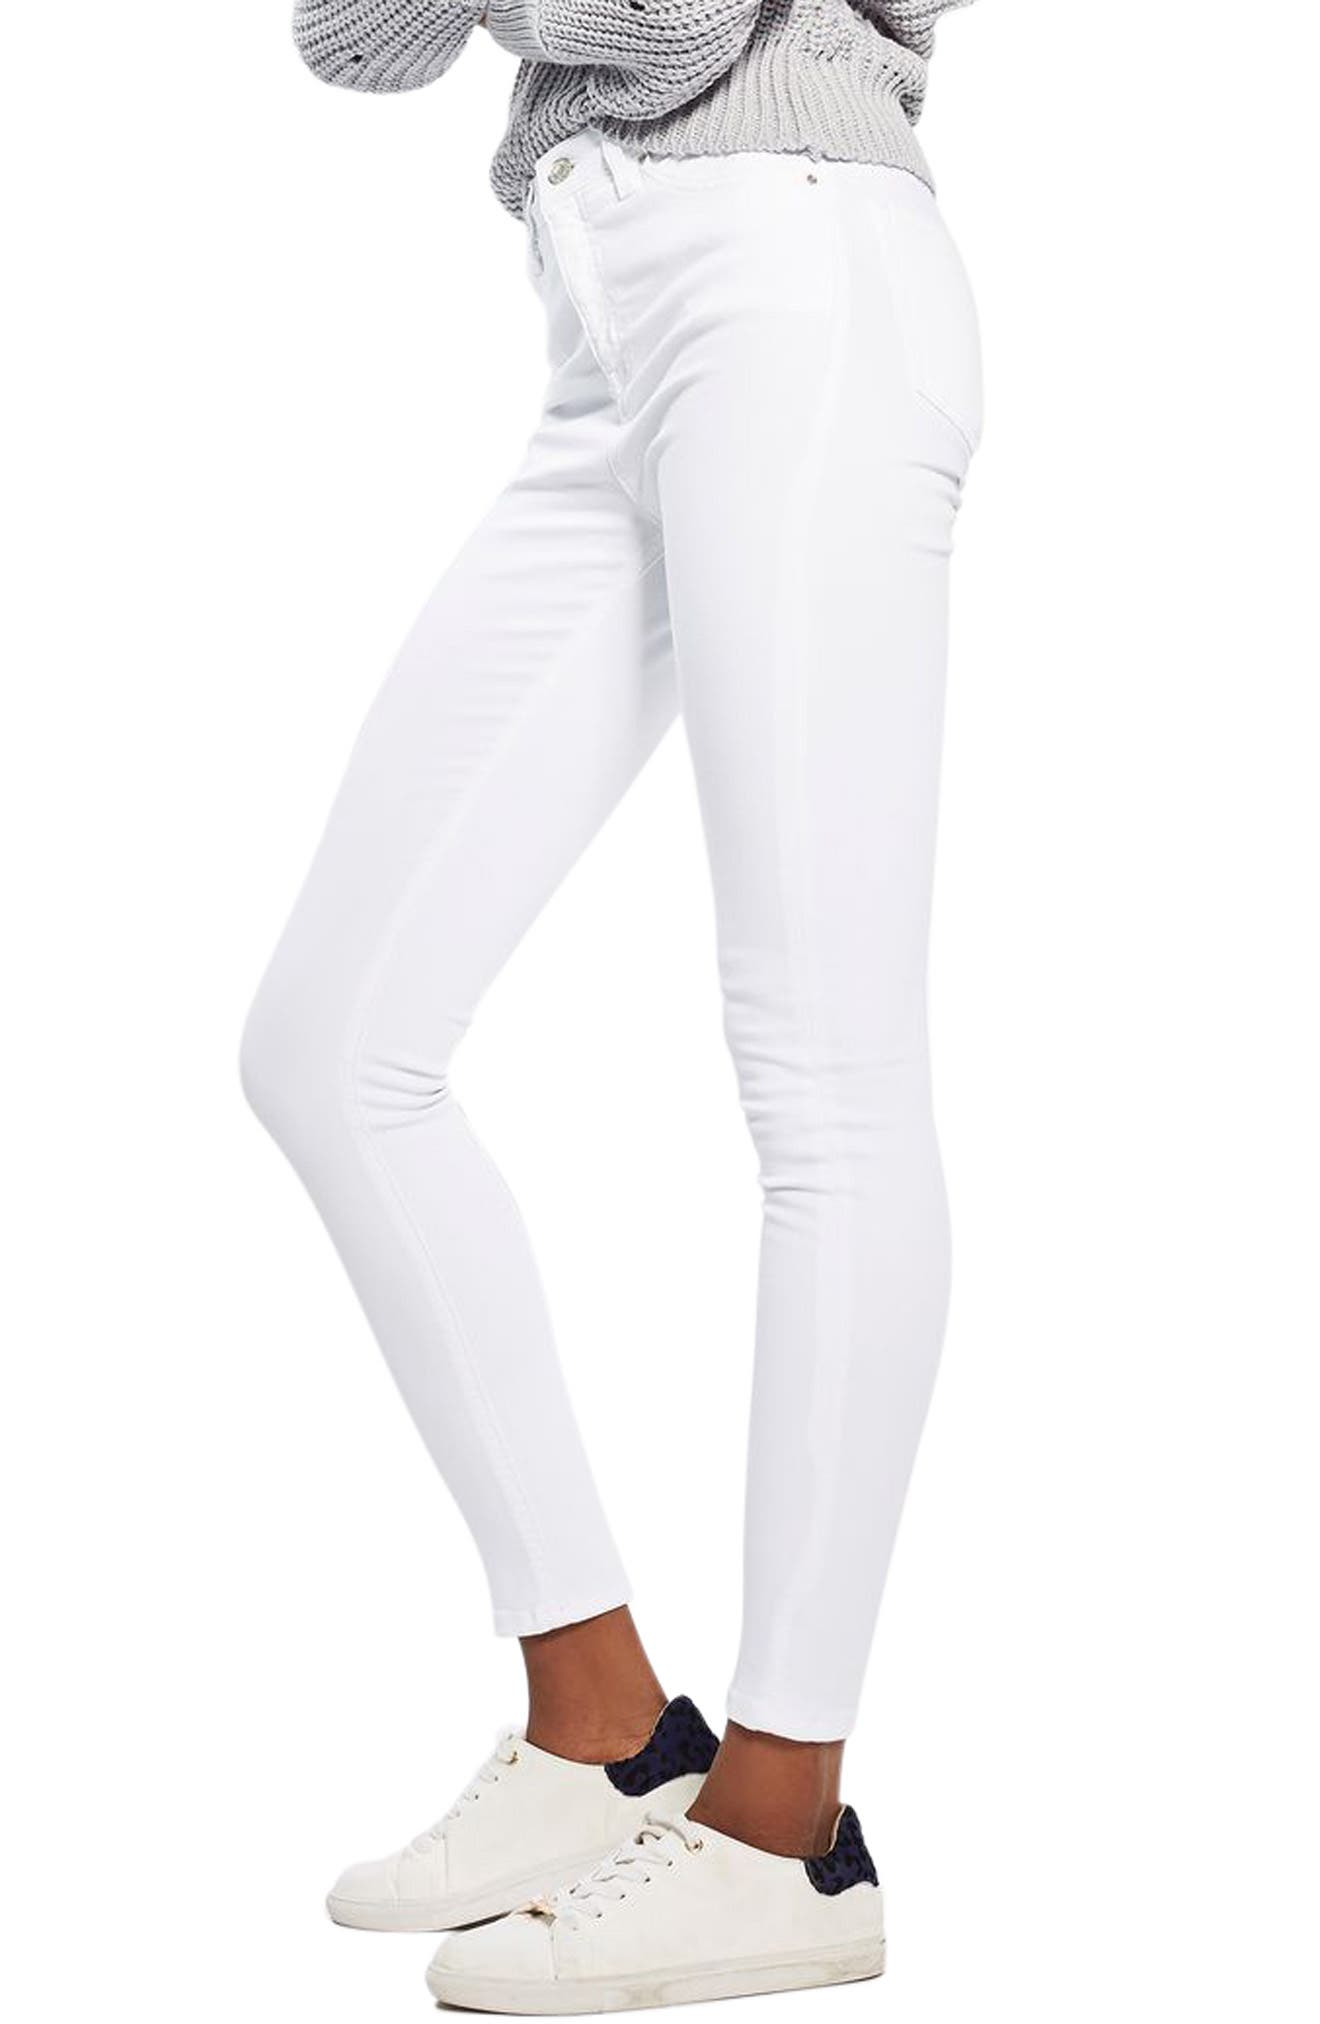 TOPSHOP, Jamie High Waist Ankle Skinny Jeans, Main thumbnail 1, color, WHITE